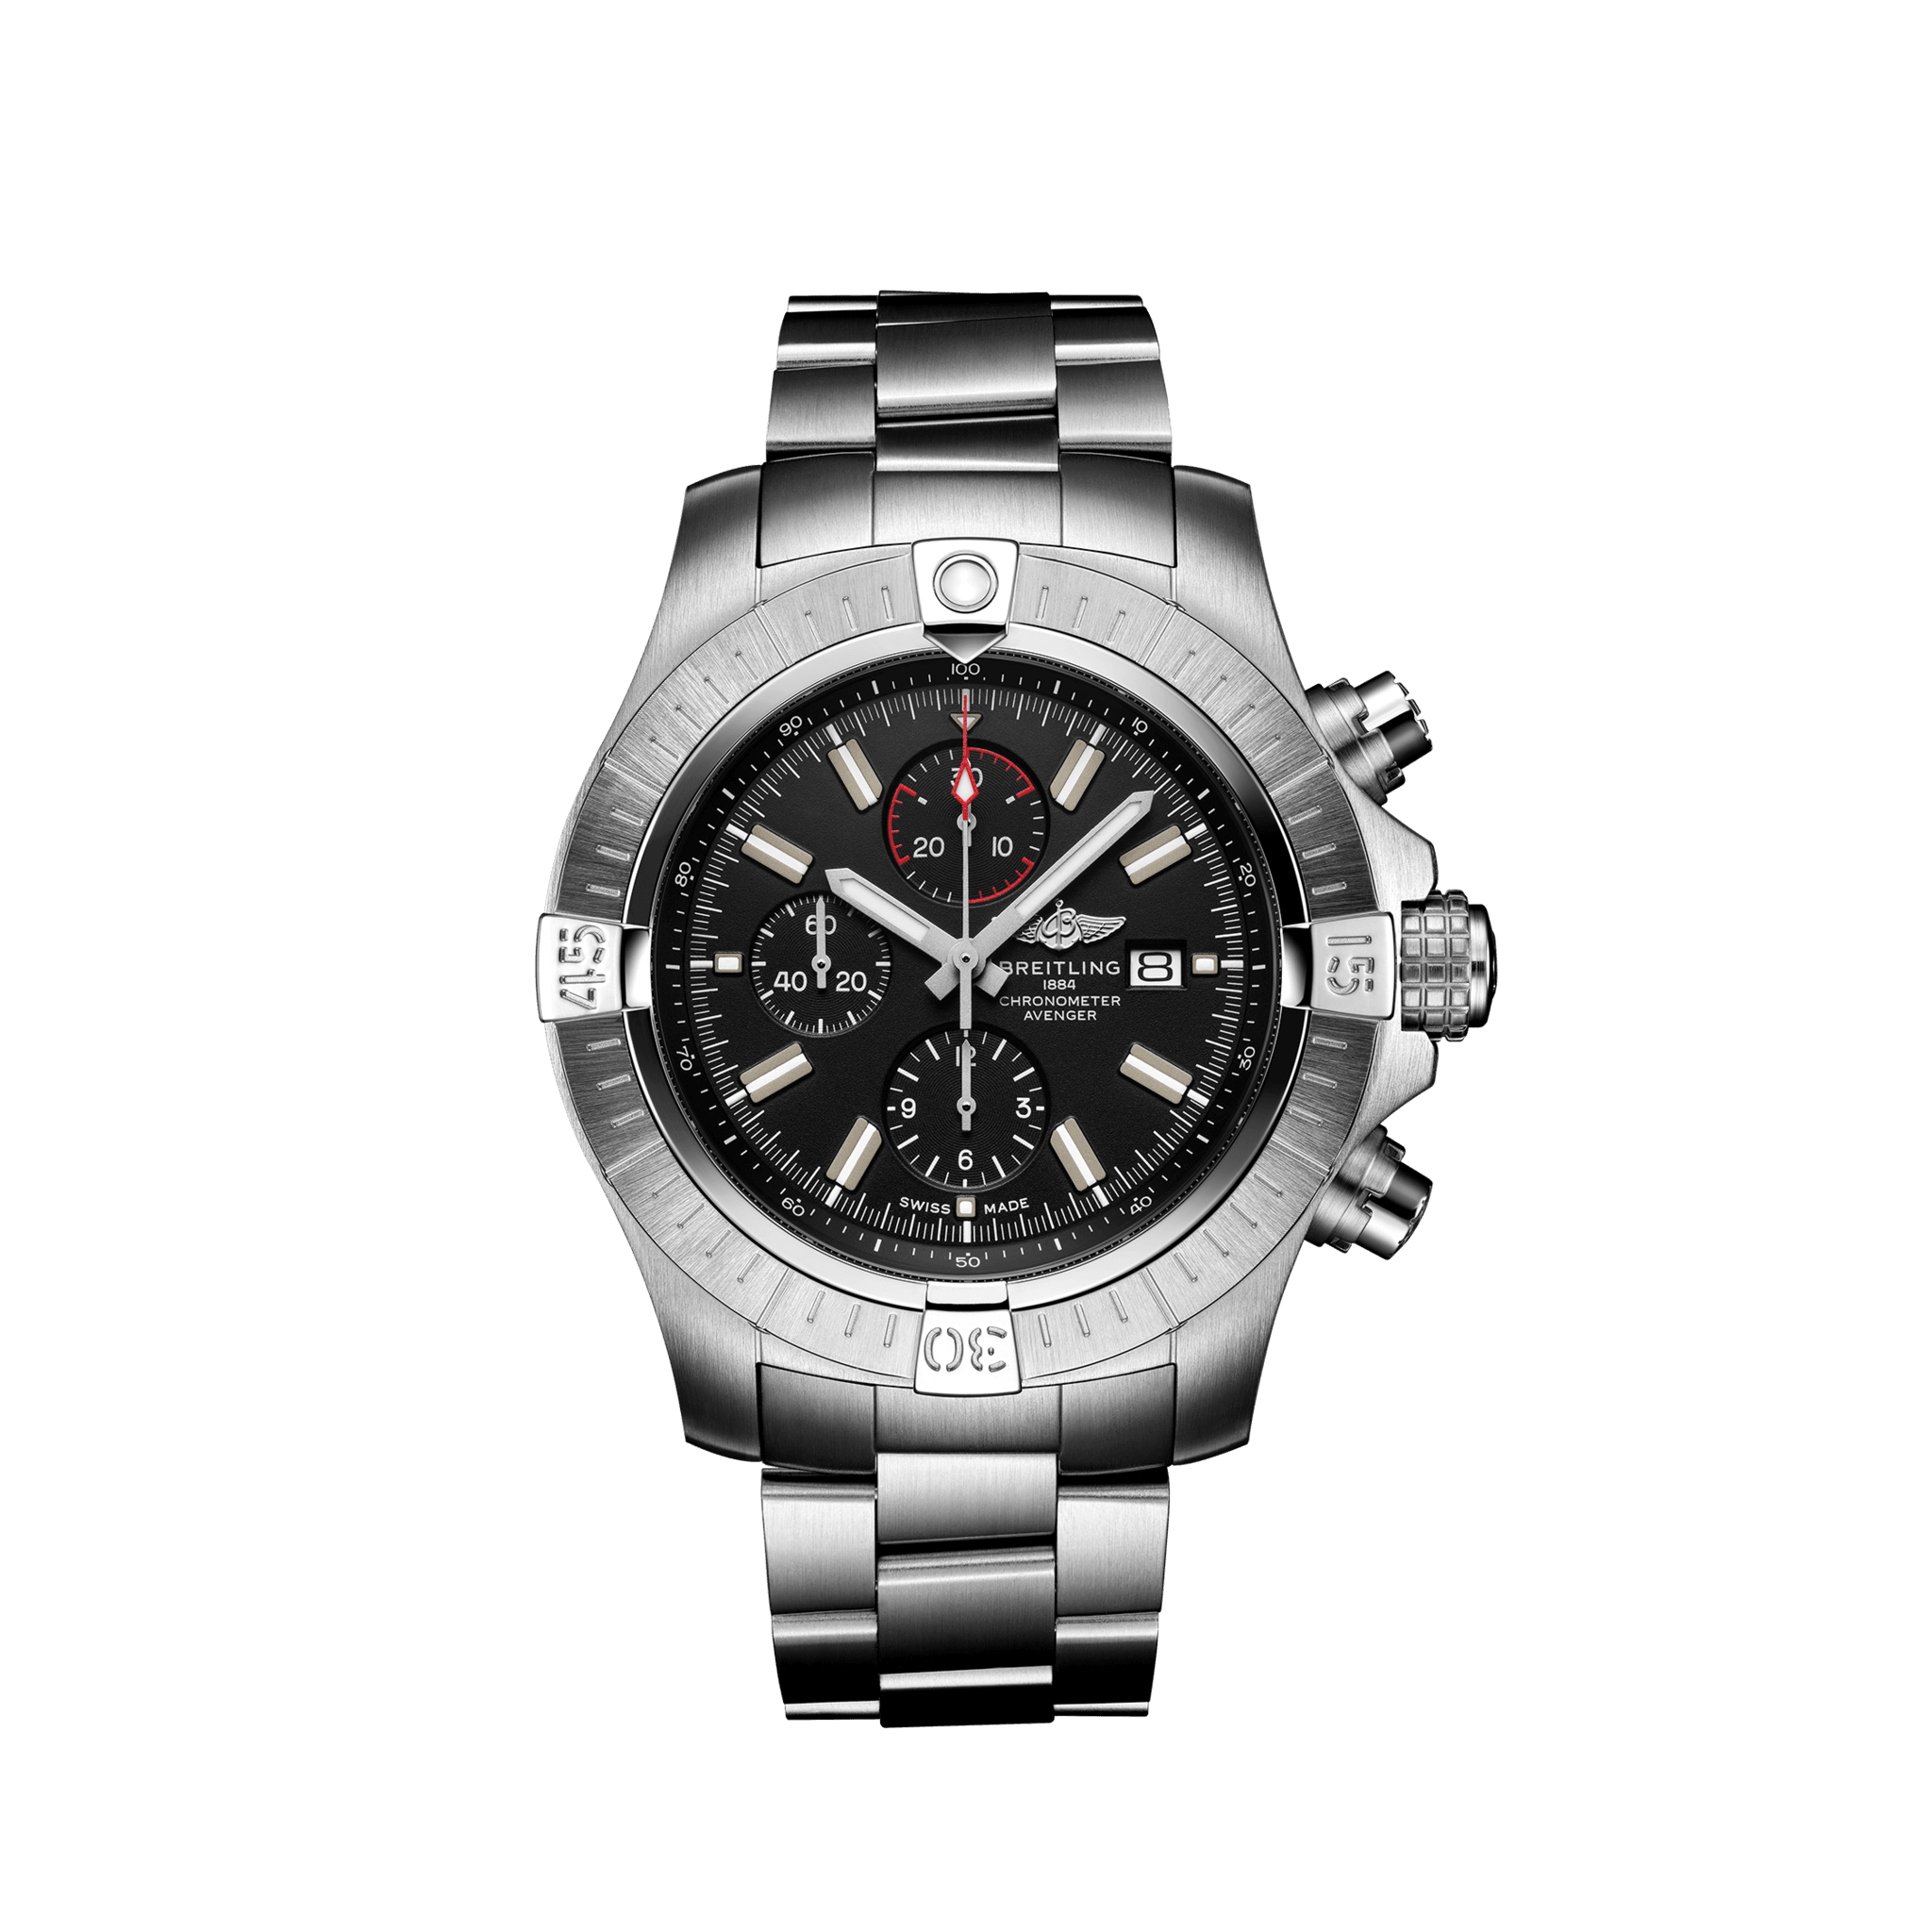 AVENGER, CHRONOGRAPH WATCHES